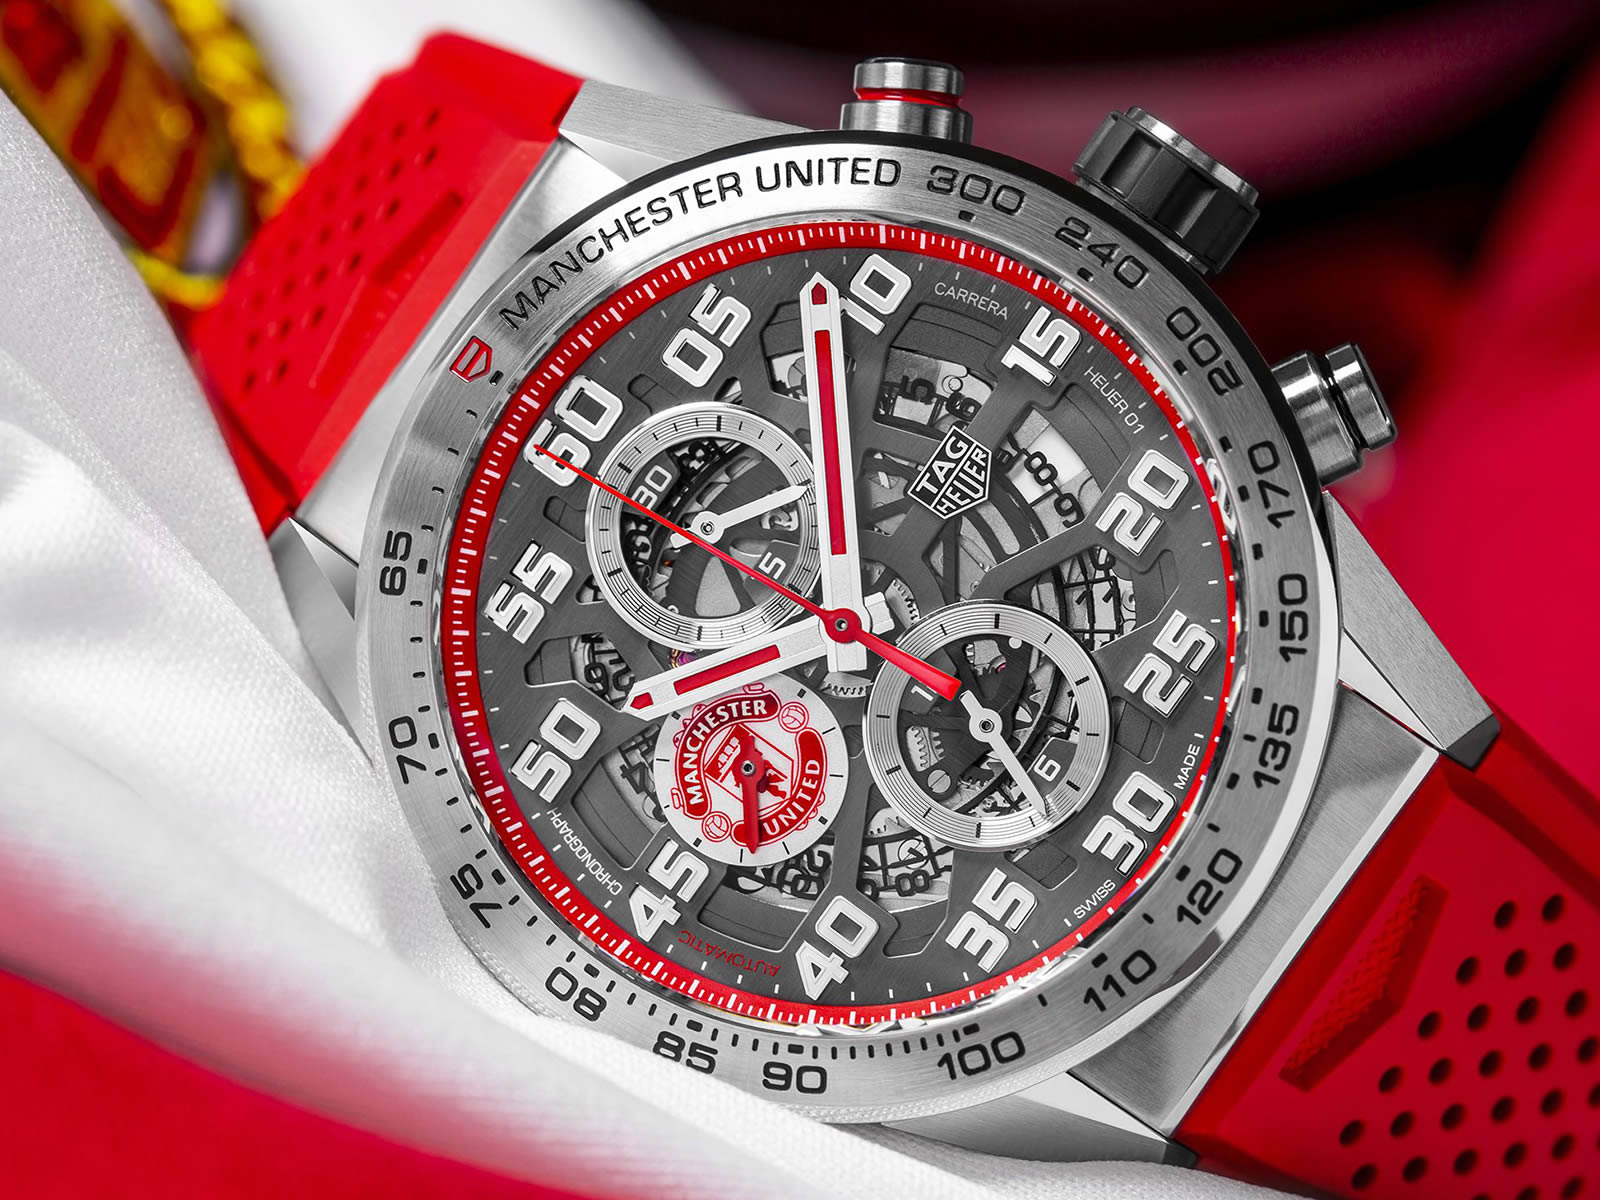 car201m-ft6156-tag-heuer-carrera-heuer-01-manchester-united-special-edition-1-.jpg